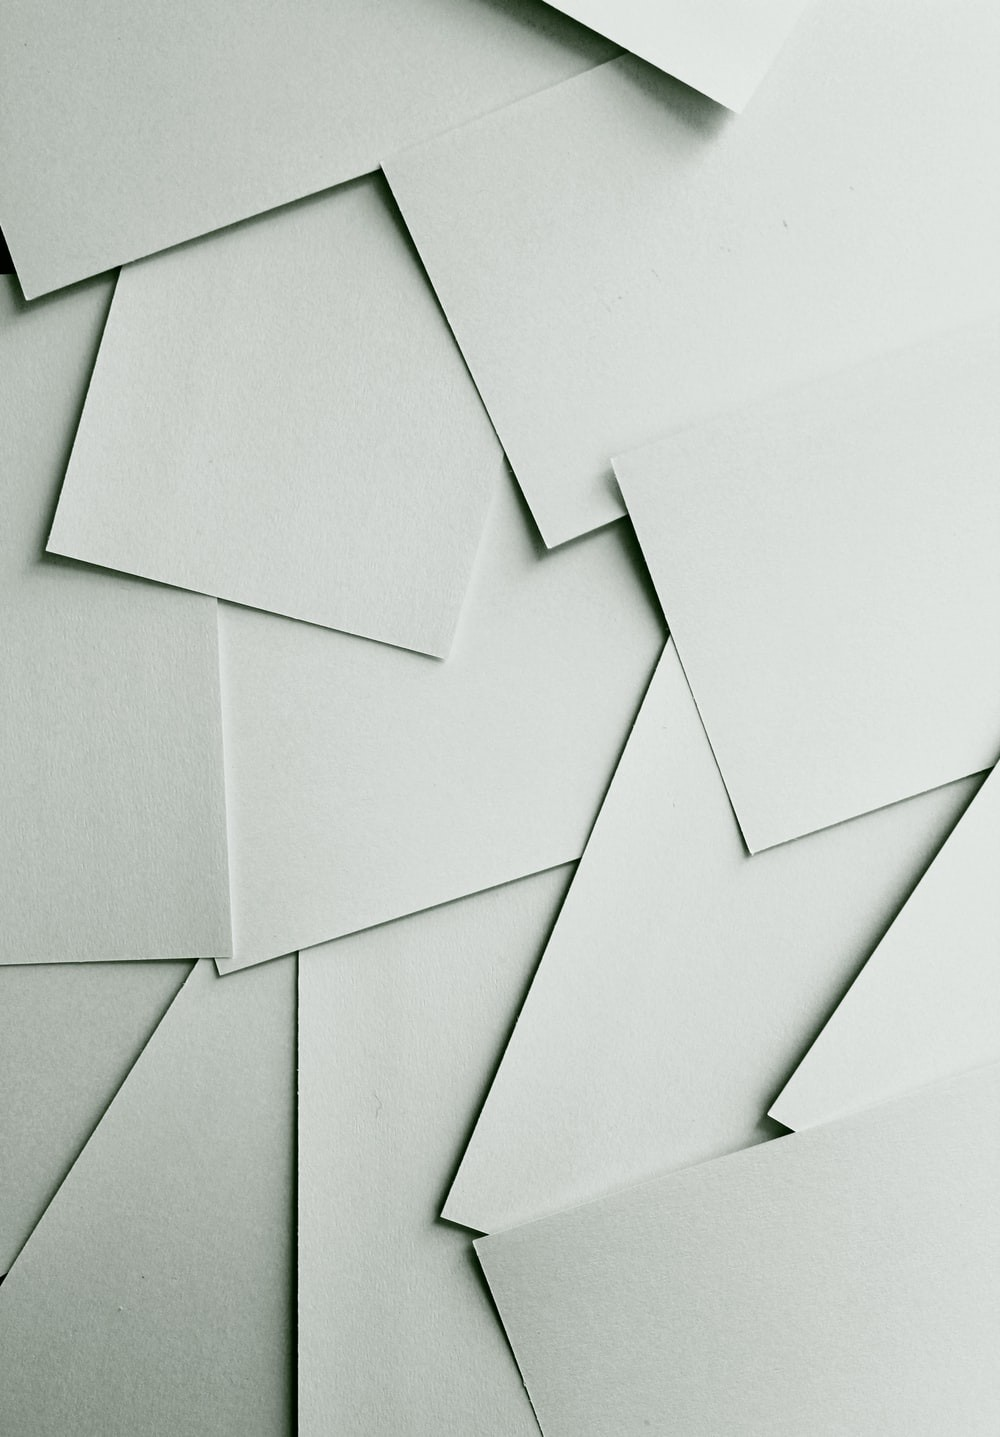 Scattered sheets of white paper